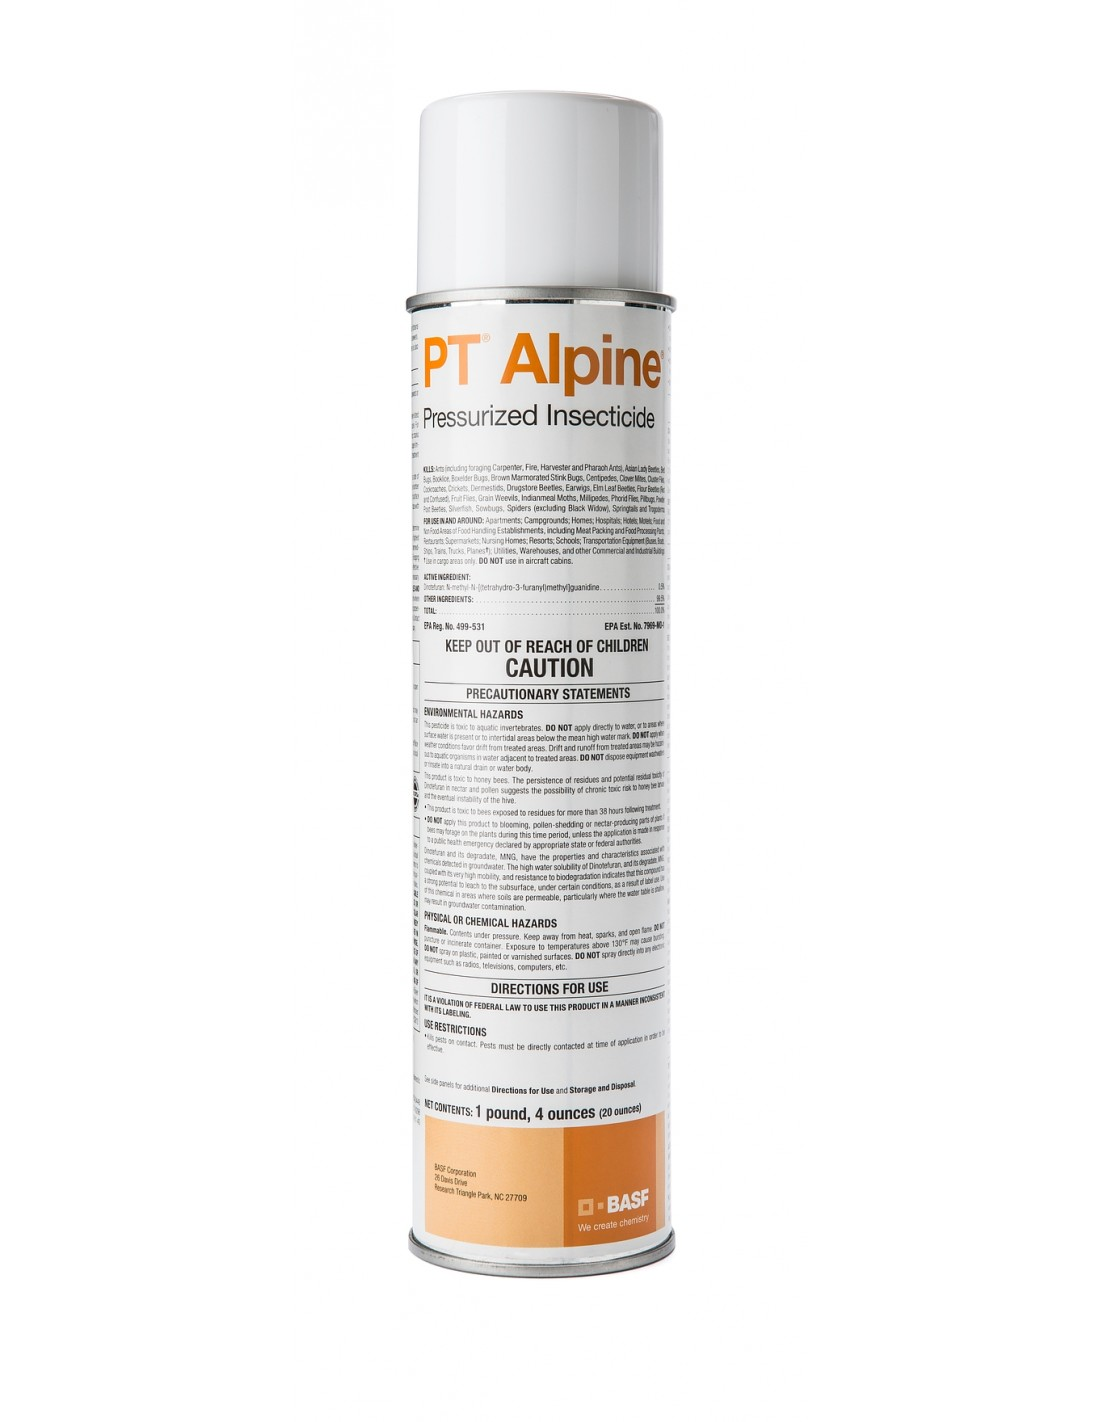 Gents,..we have Alpine PT for indoors but need something we can apply directly on our yorkie, skin